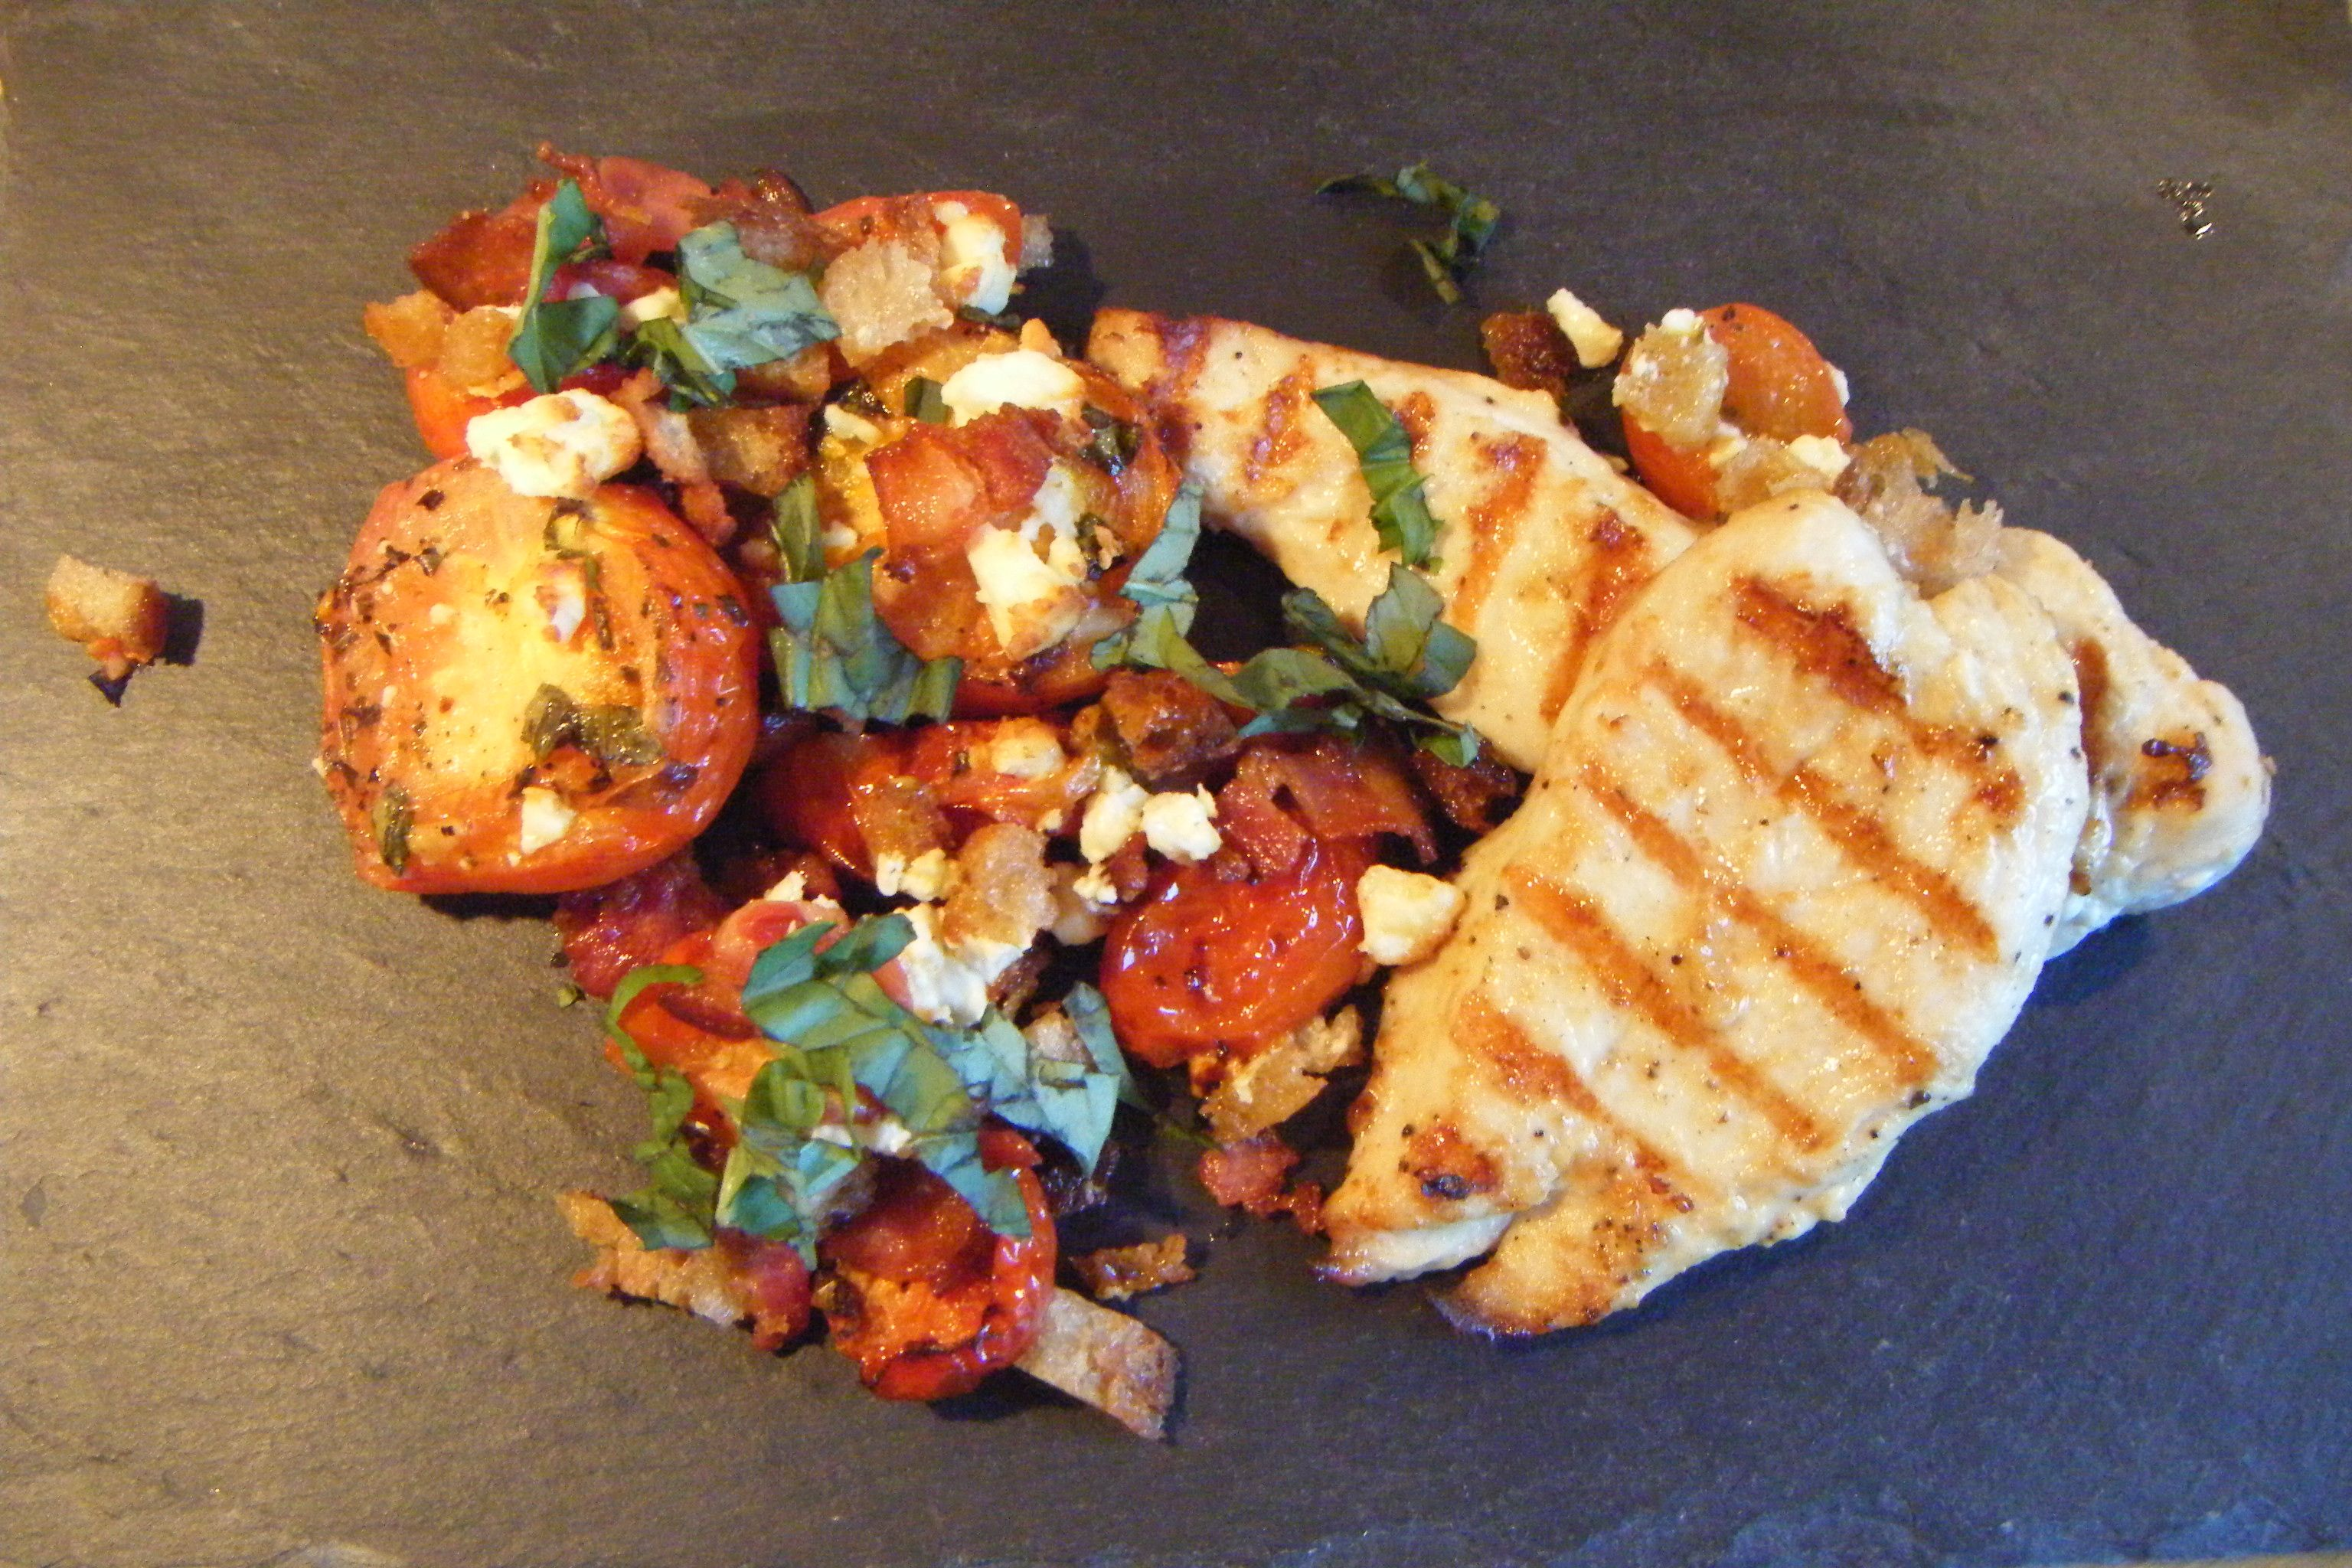 Oven roasted tomato salad with grilled chicken